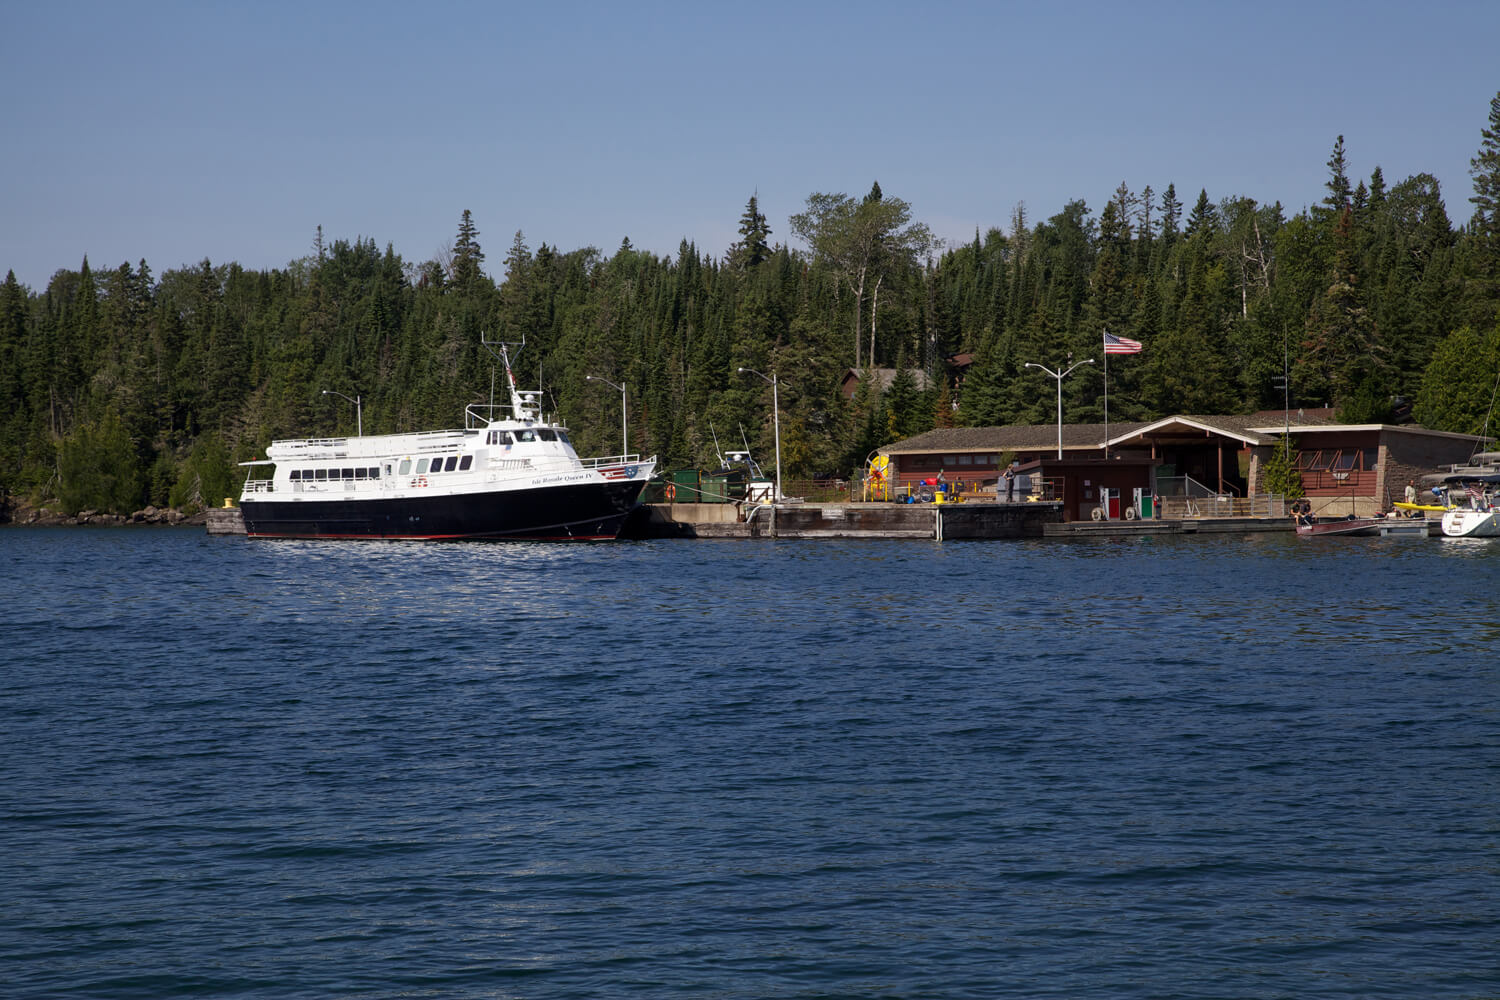 Two ways to get to Isle Royale - Ferry or Sea Plane.